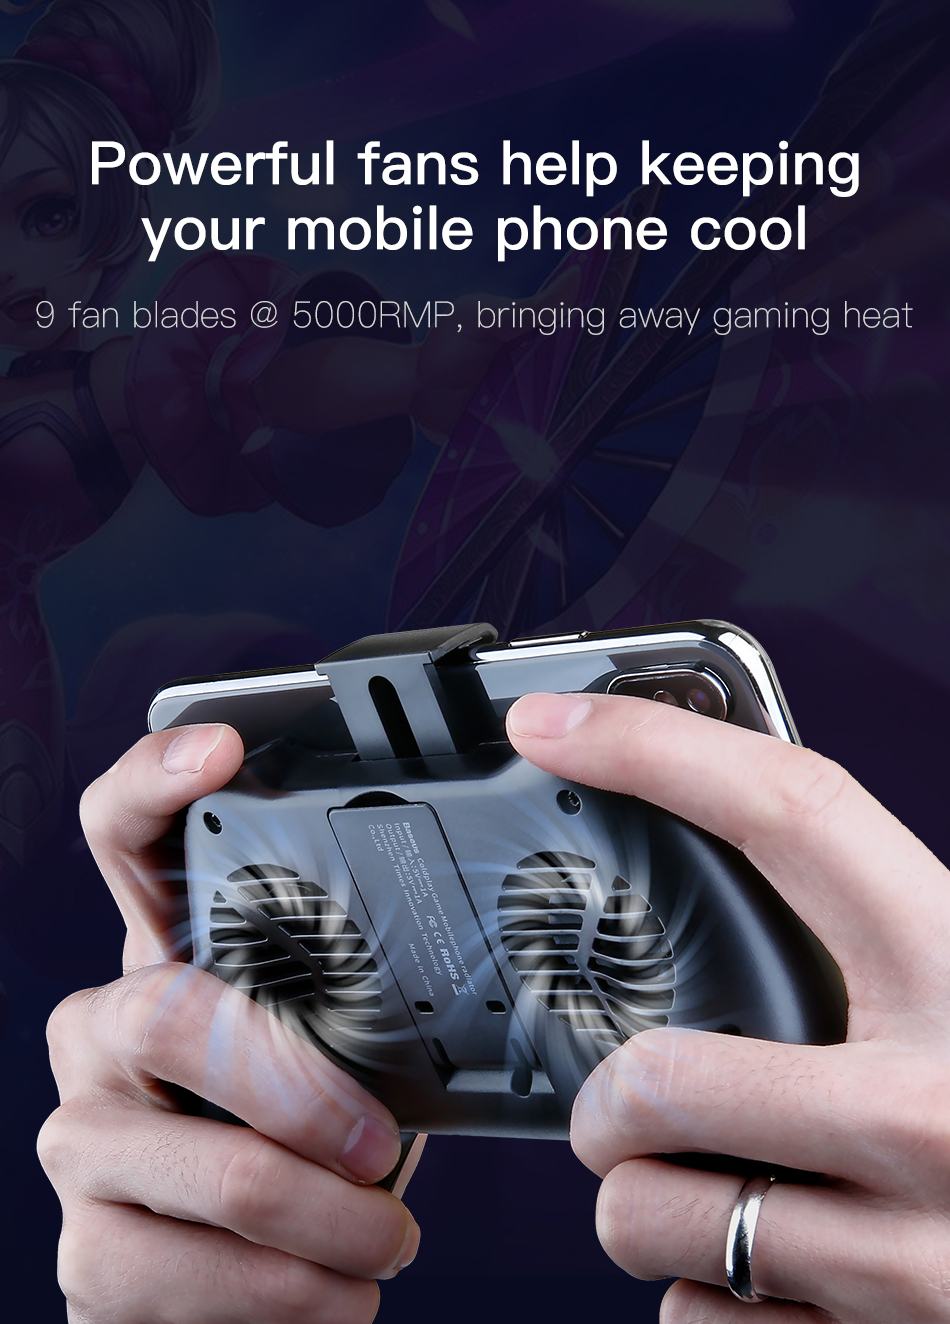 Baseus Mobile Phone Cooler For iPhone Xs Max Xr X Samsung S10 S9 Huawei P30  P20 Pro Gamepad Game Holder Stand Cooling Controller